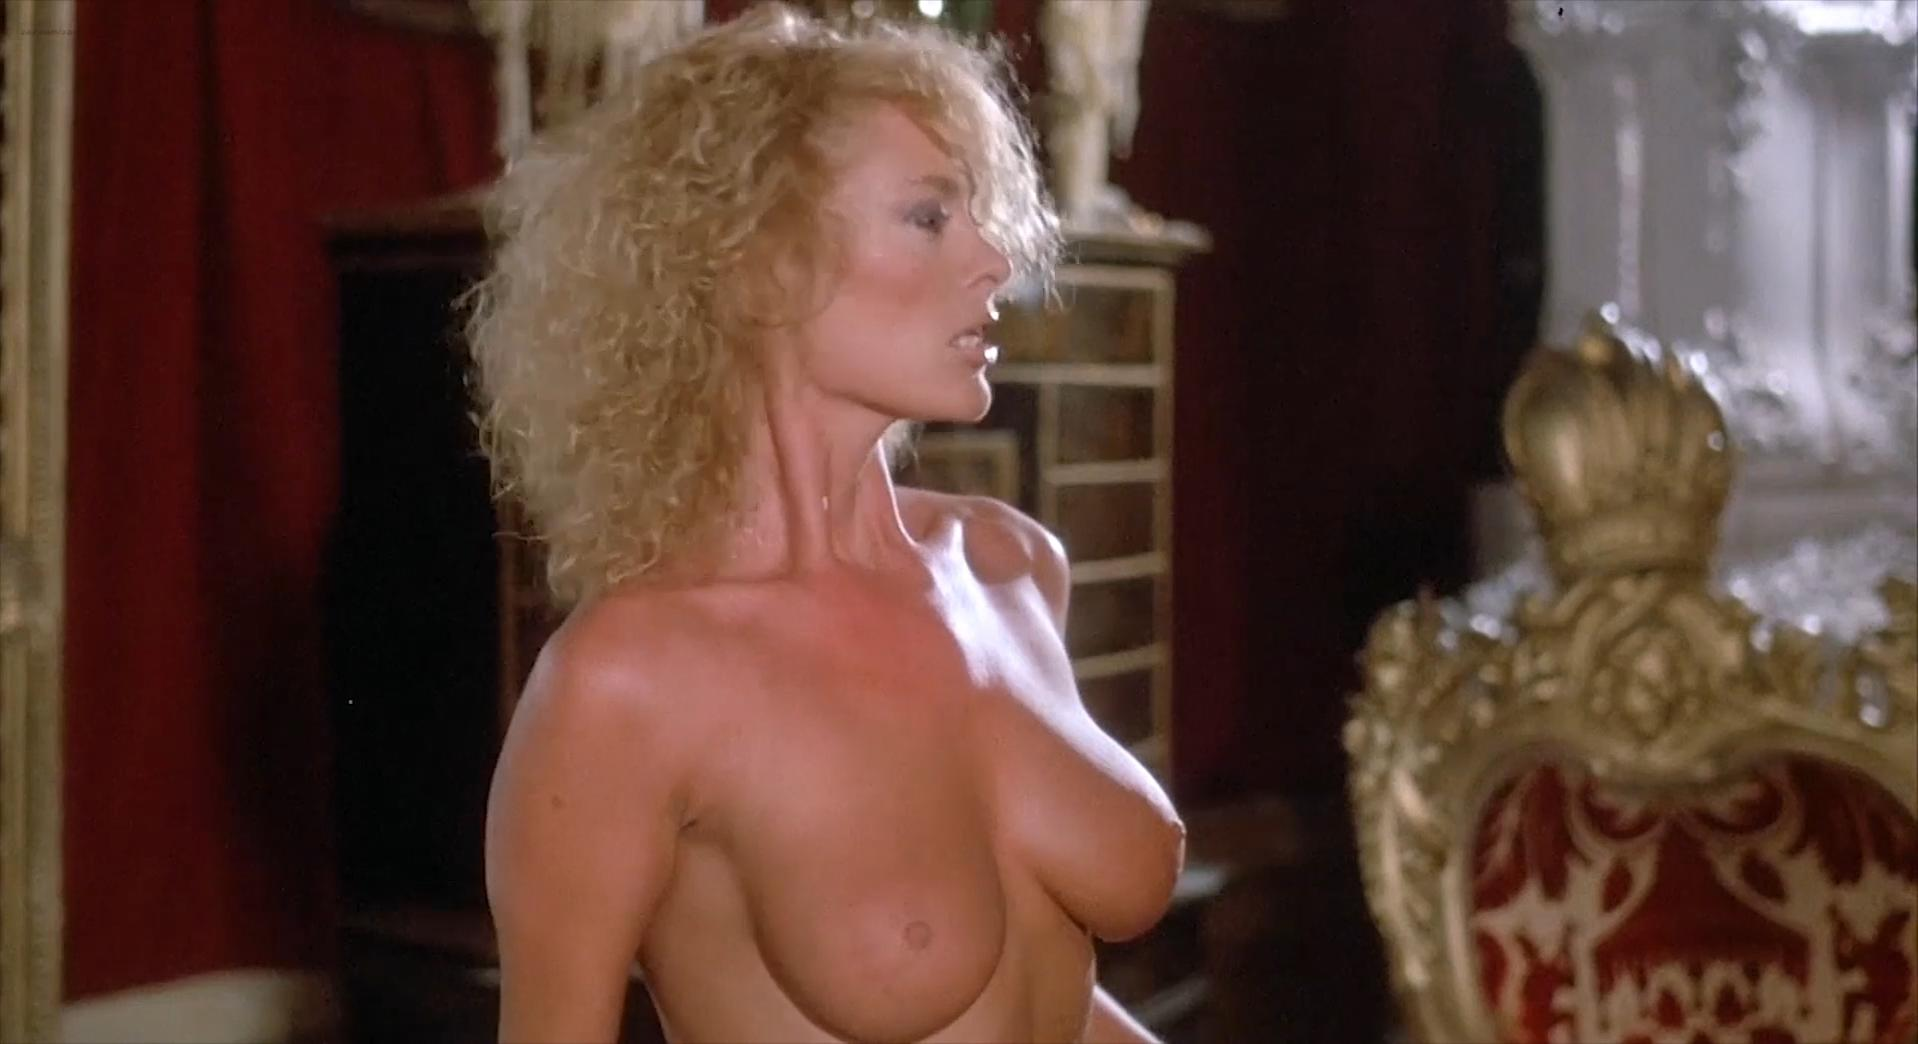 Colleen brennan karen summer jerry butler in classic porn - 2 part 7